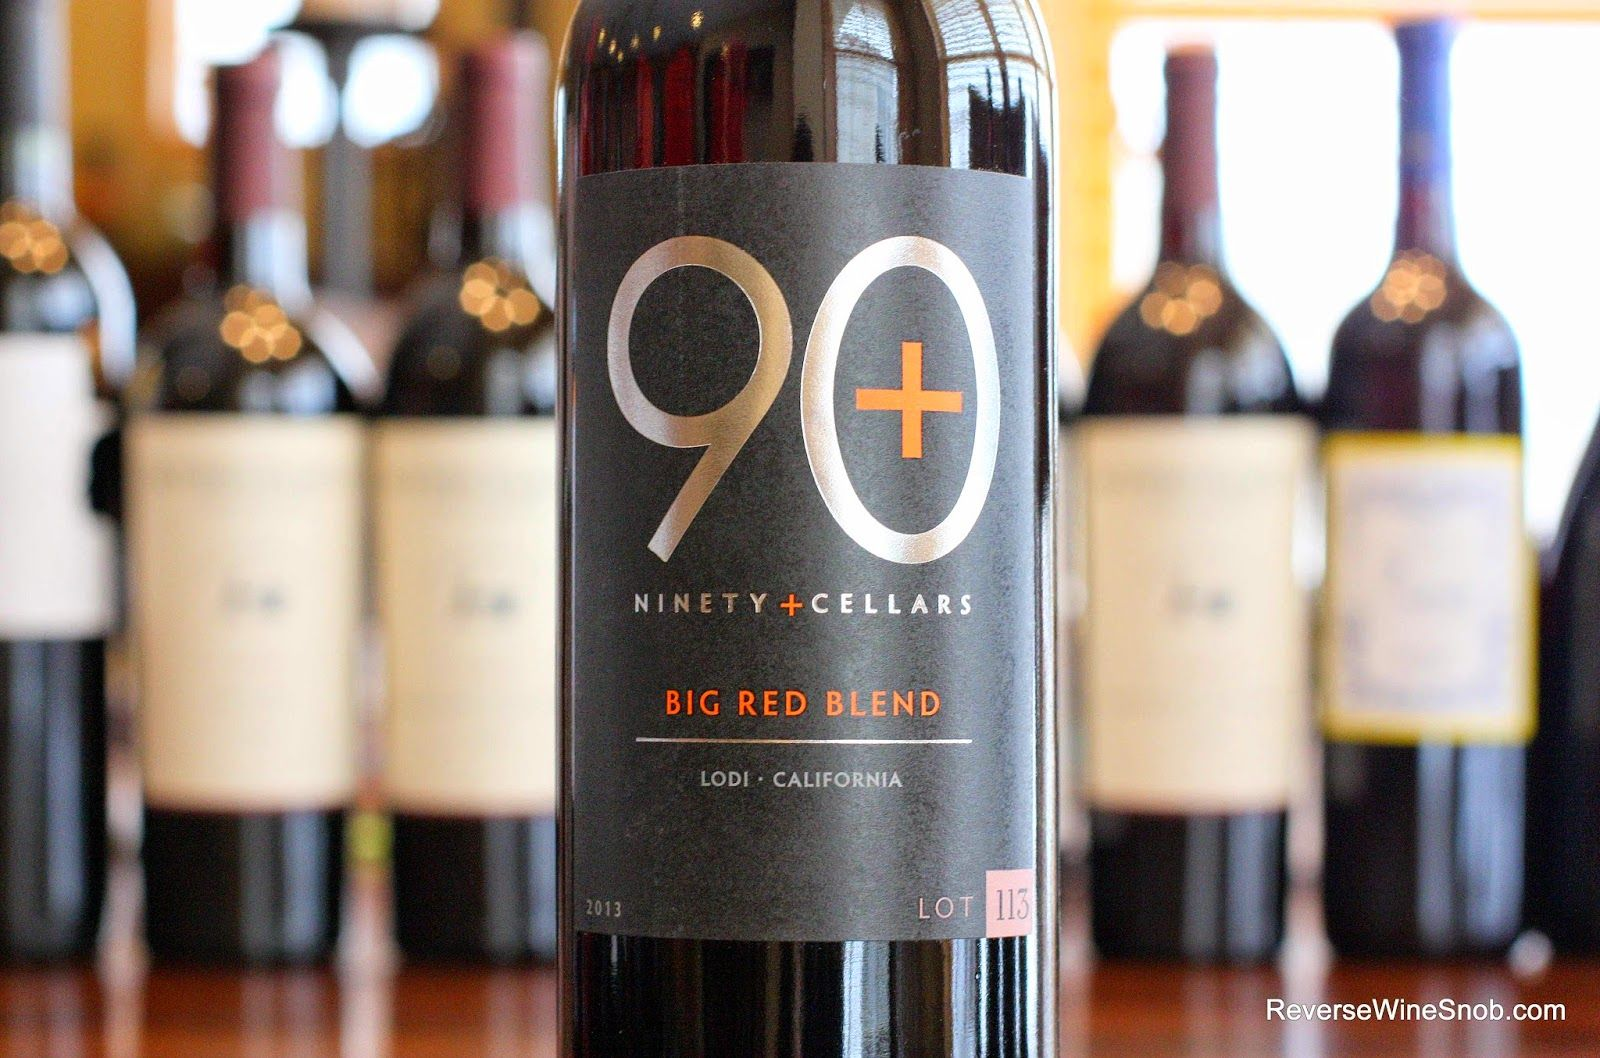 90 plus cellars lot 113 big red blend firstrate wine